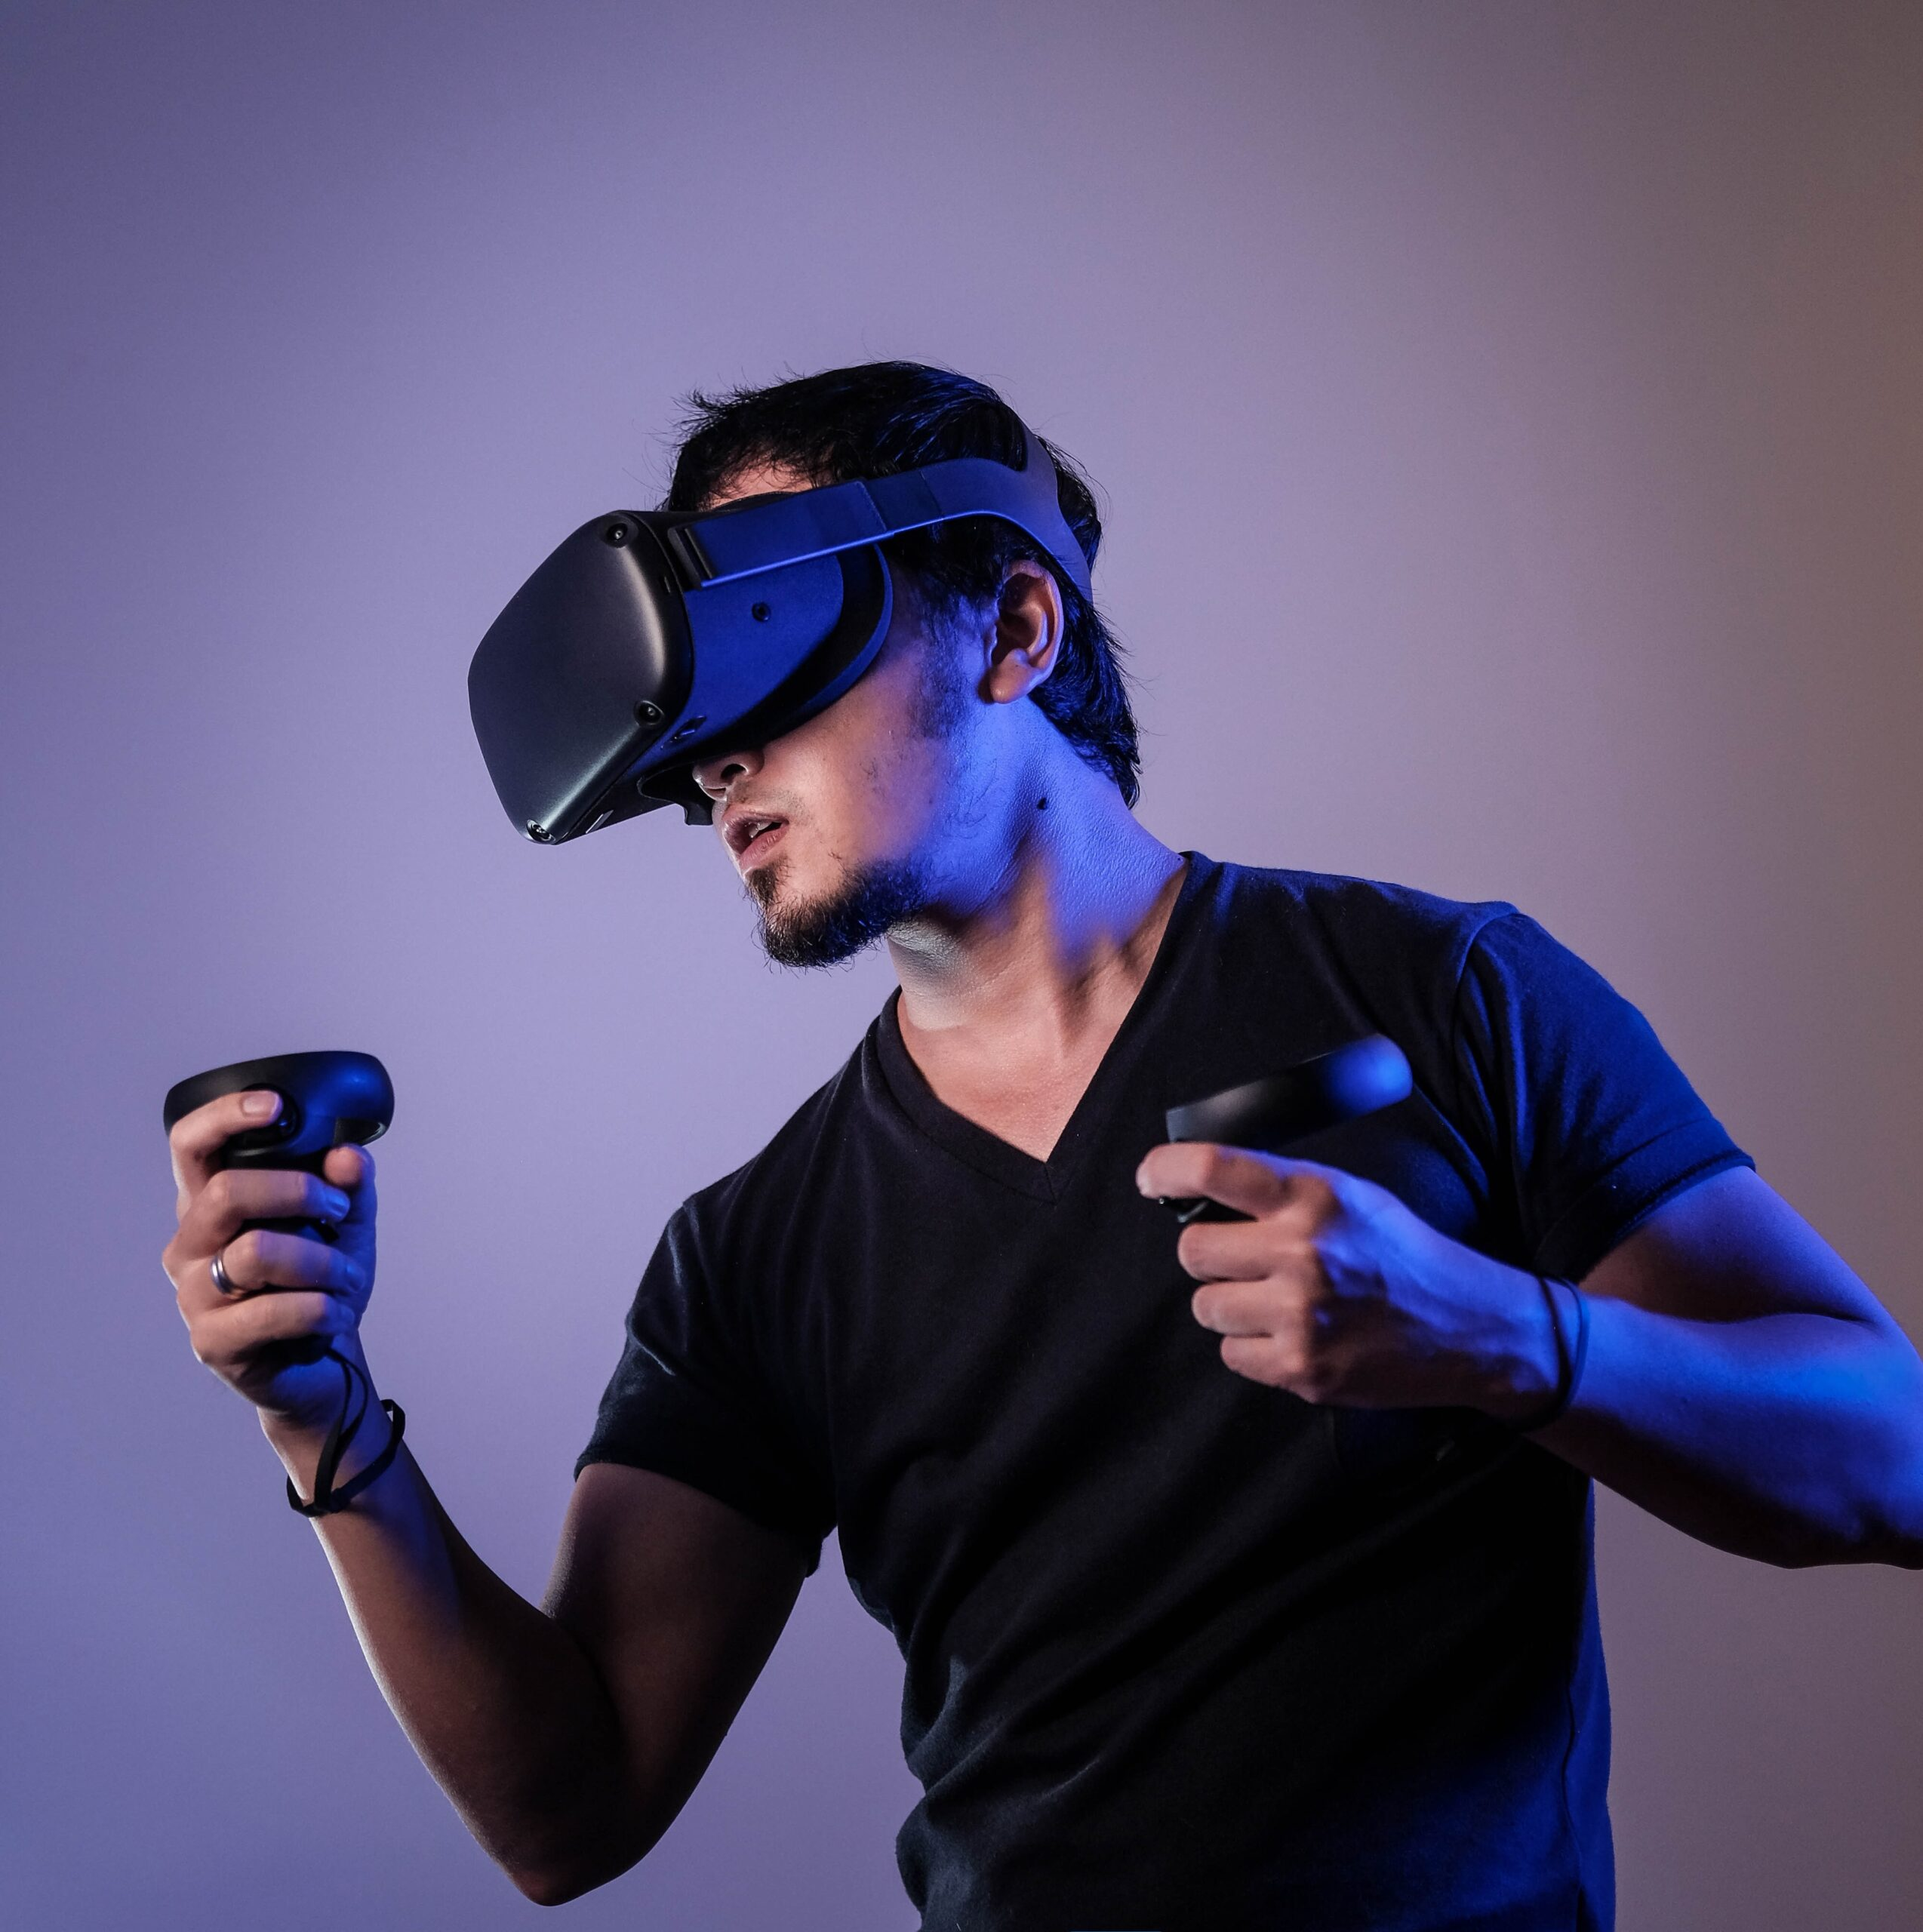 Oculus Rift vs. Quest: Which Should You Buy?